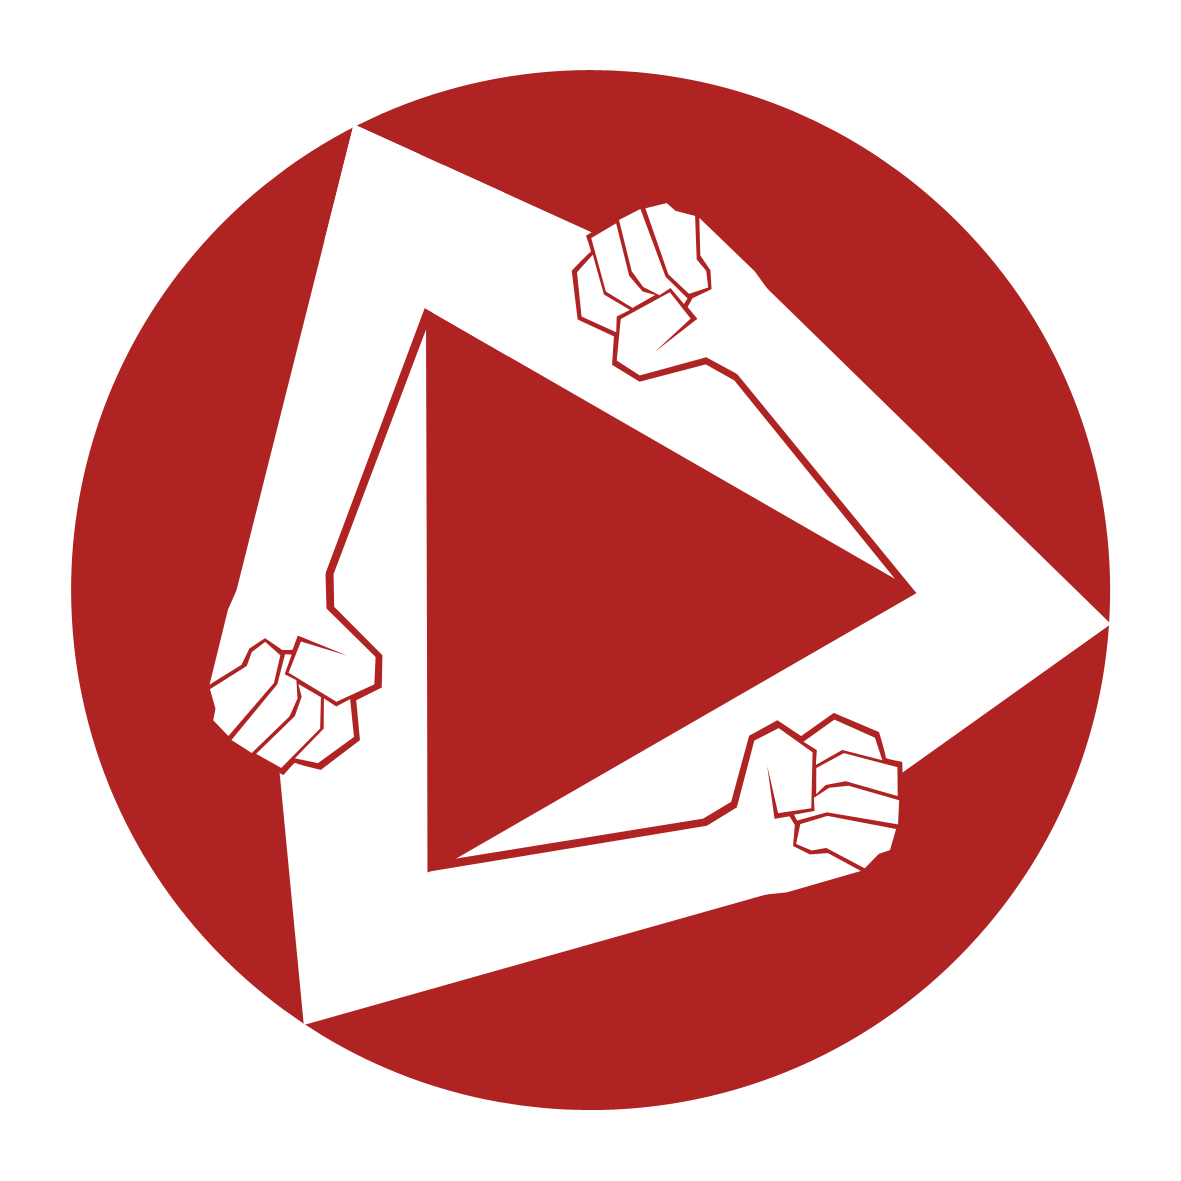 Fight arms png. Rep logo